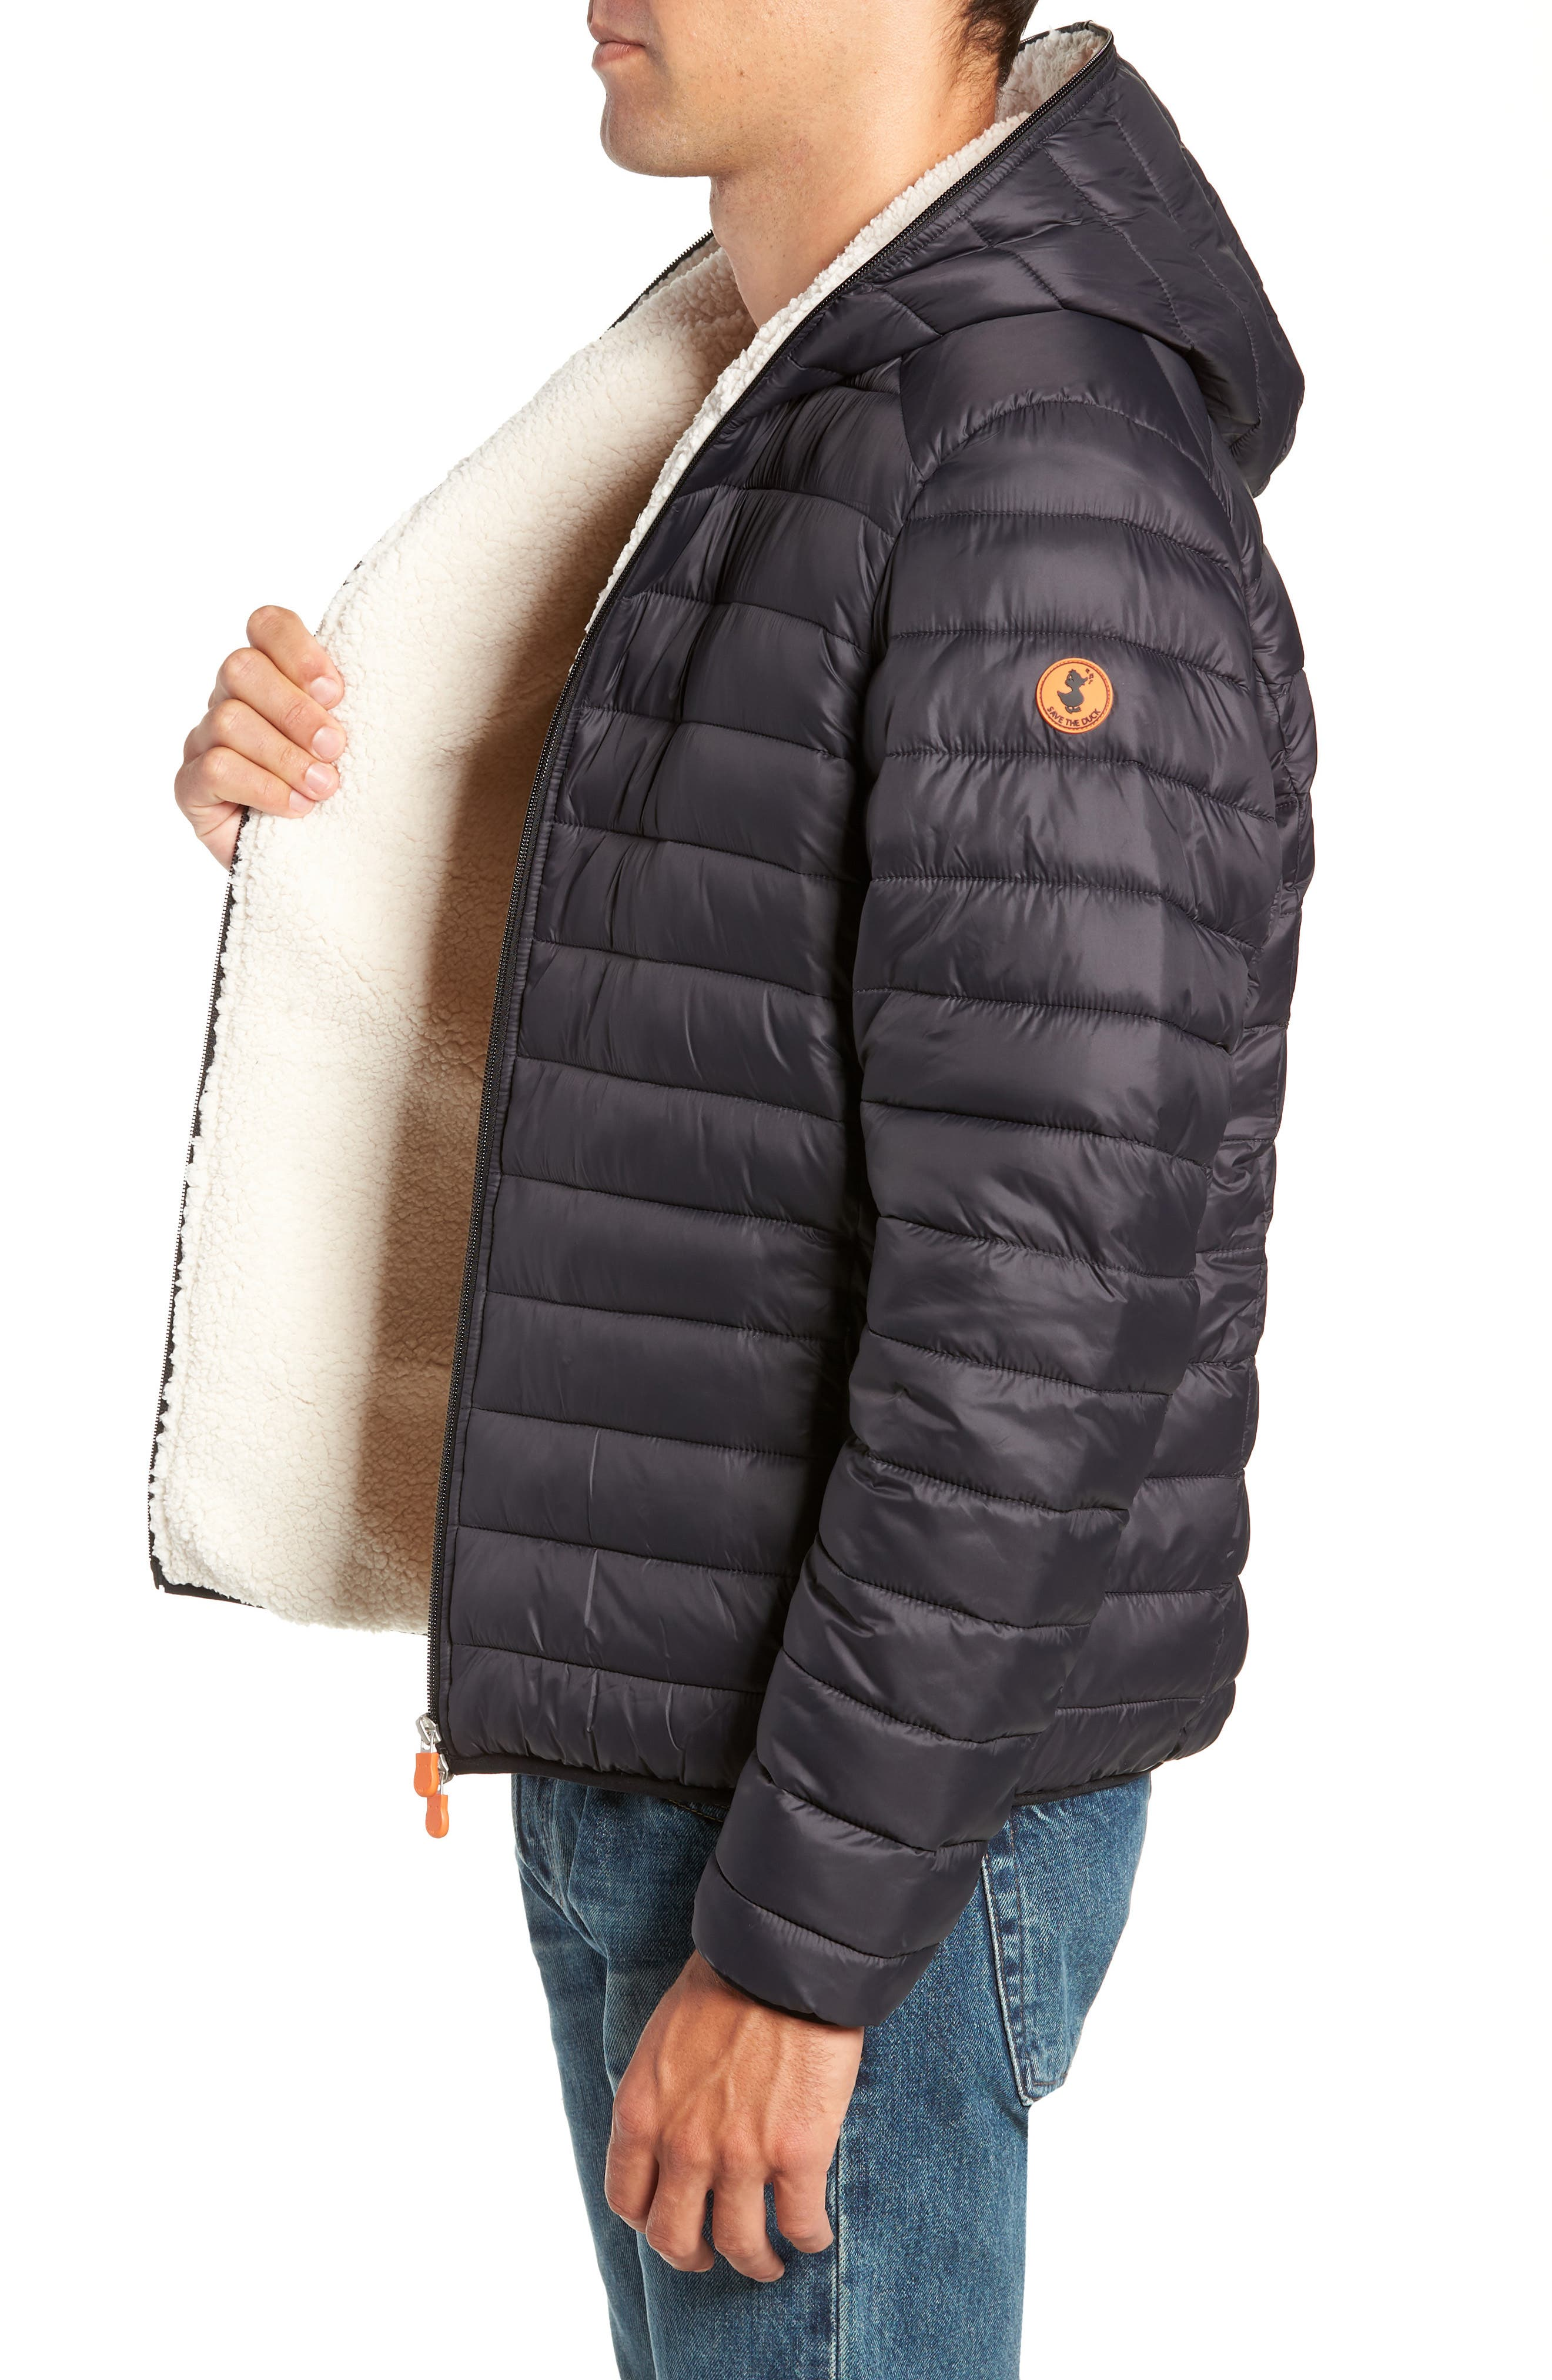 Hooded PLUMTECH<sup>®</sup> Insulated Packable Jacket,                             Alternate thumbnail 3, color,                             001